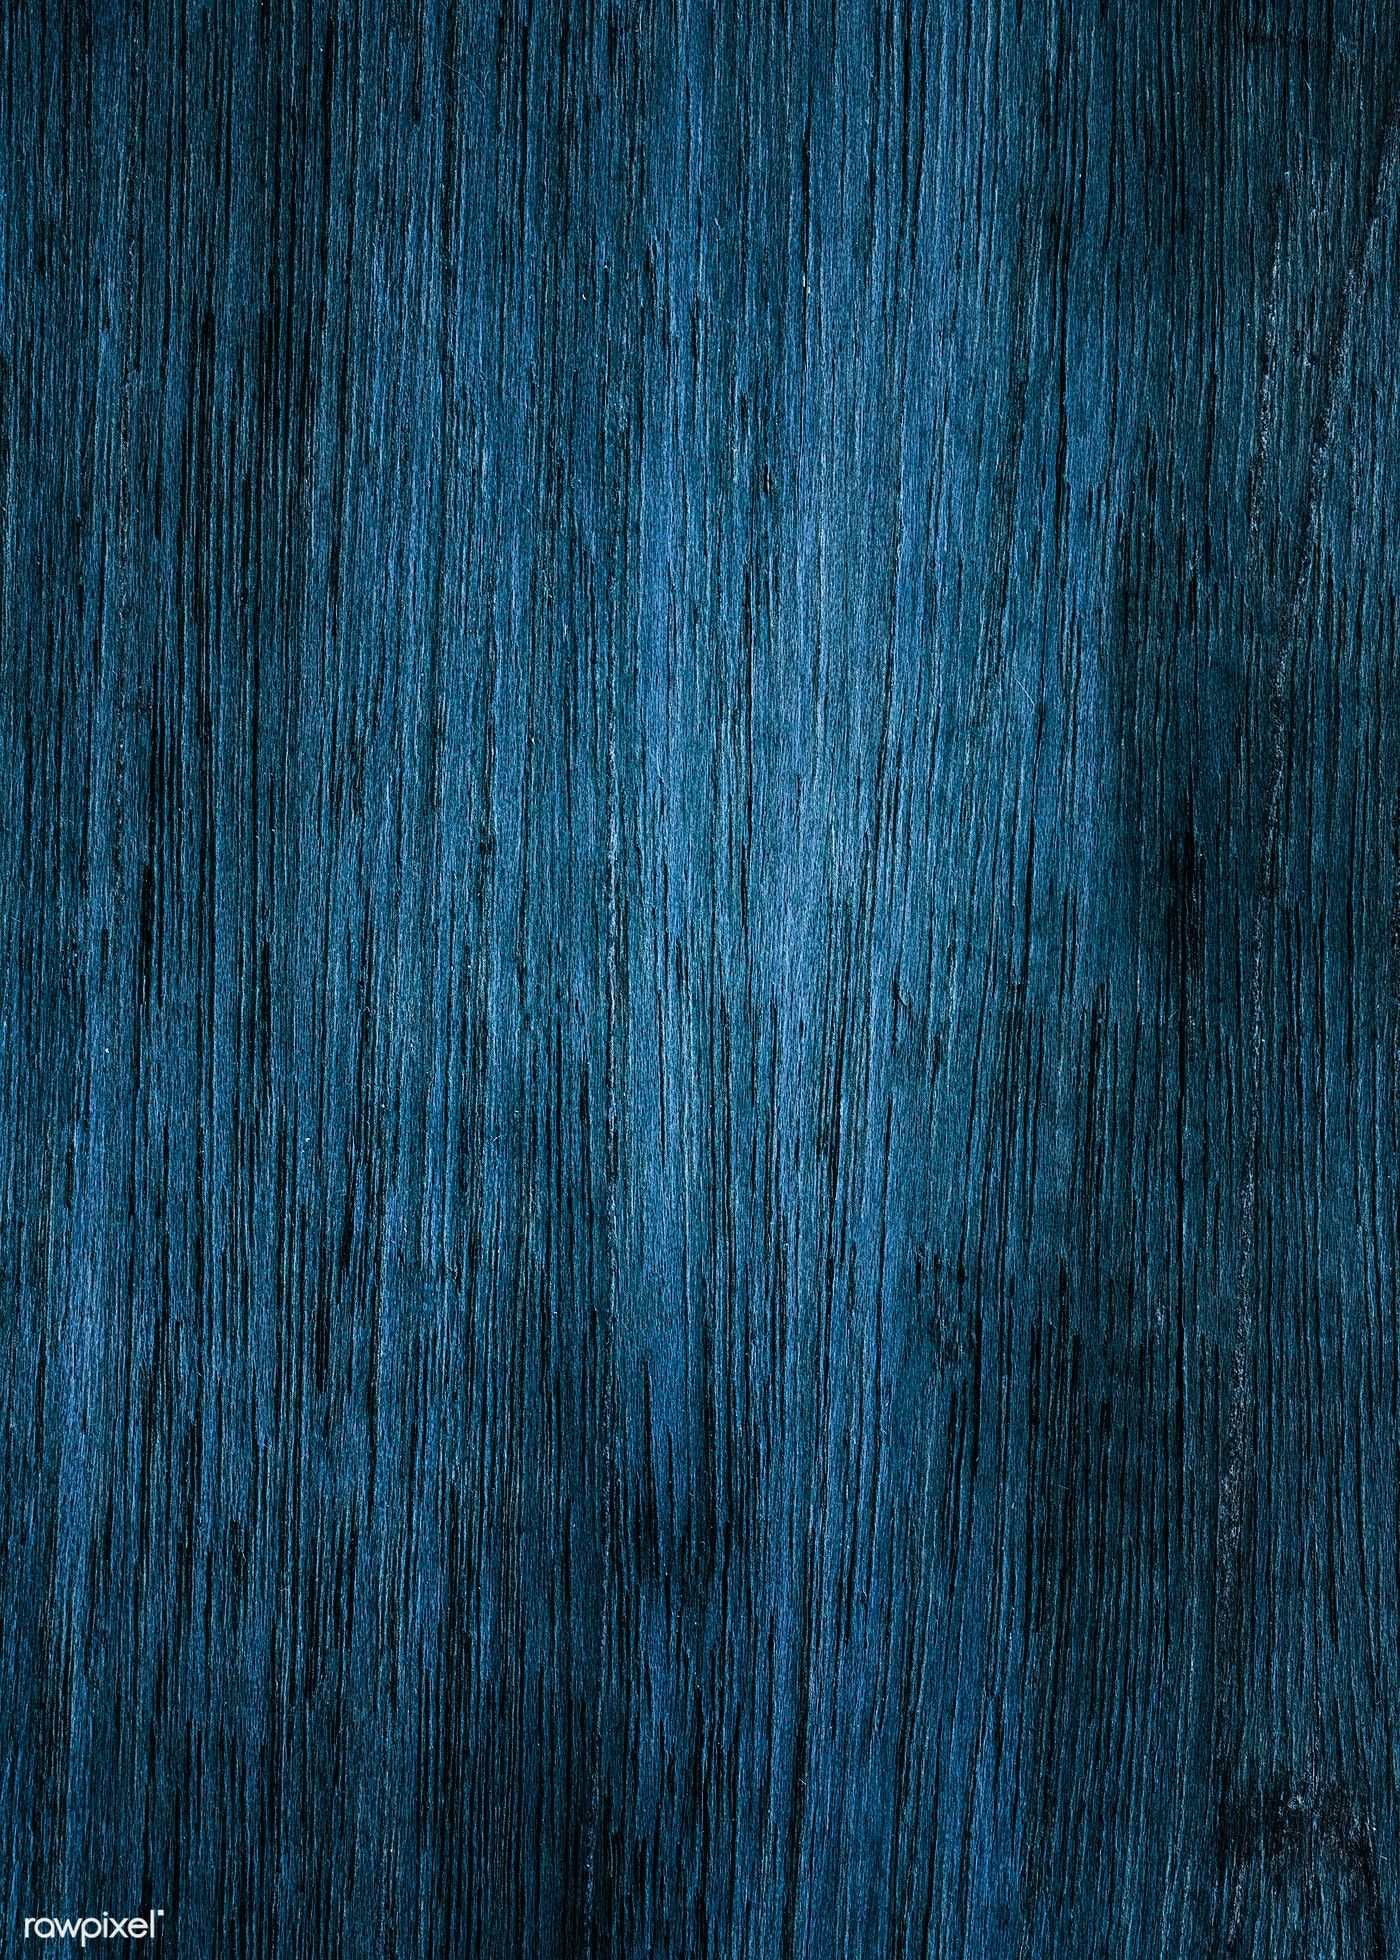 Blue Wood Textured Mobile Wallpaper Background Free Image By Rawpixel Com Marinemynt Wood Texture Wood Iphone Wallpaper Blue Wood